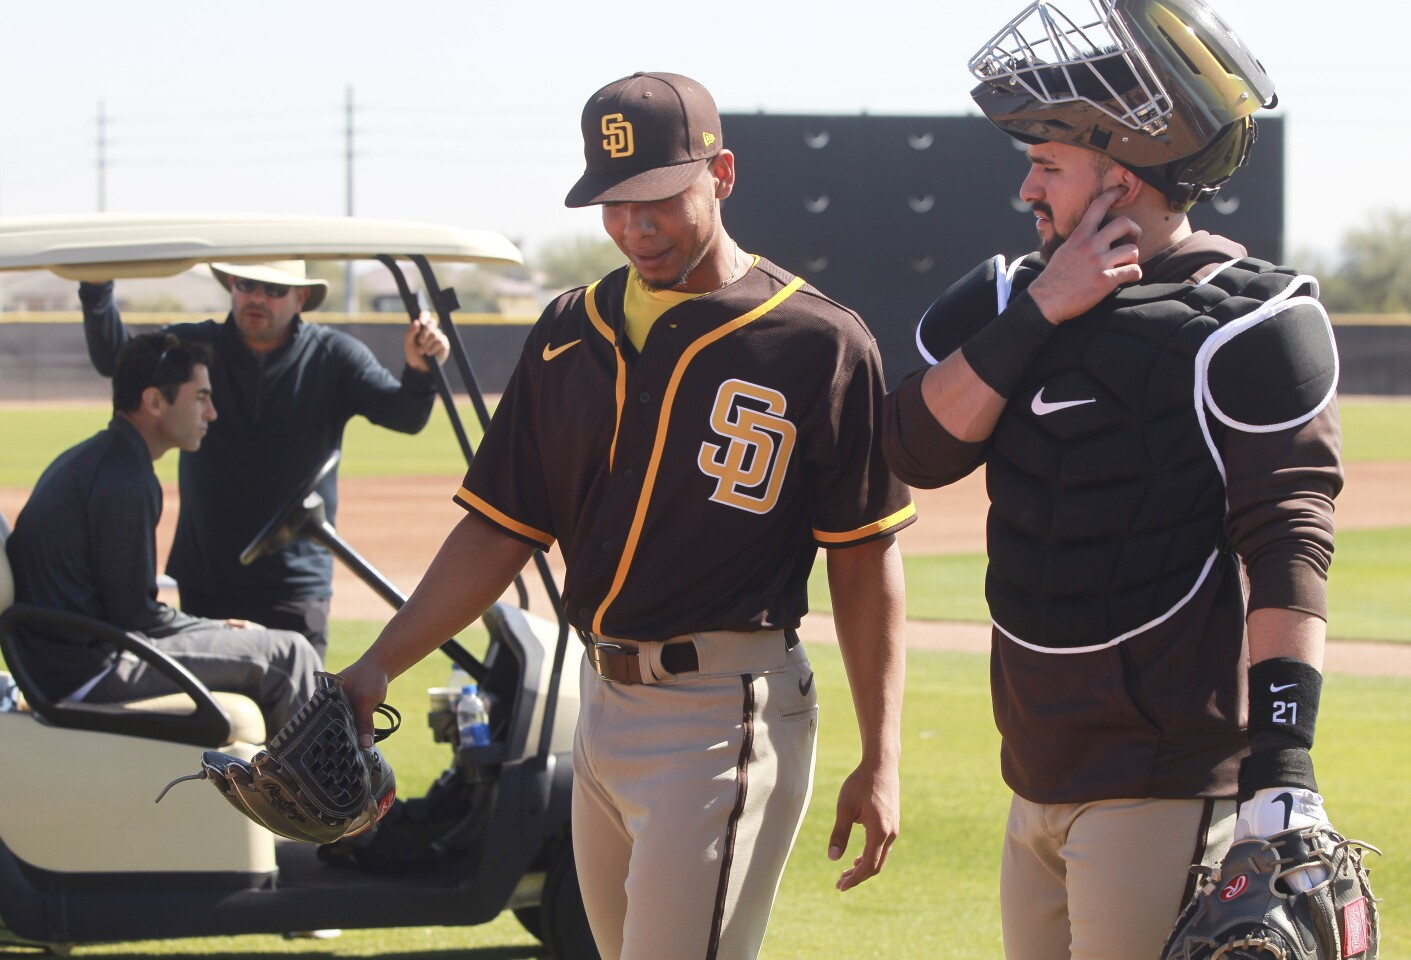 Padres pitcher Luis Patiño walks off the field with catcher Luis Torrens after Patiño threw pitches while Padres General Manager A.J. Preller, sitting in cart, left, watched during Padres spring training at the Peoria Sports Complex on Thursday, February 13, 2020 in Peoria, Arizona.